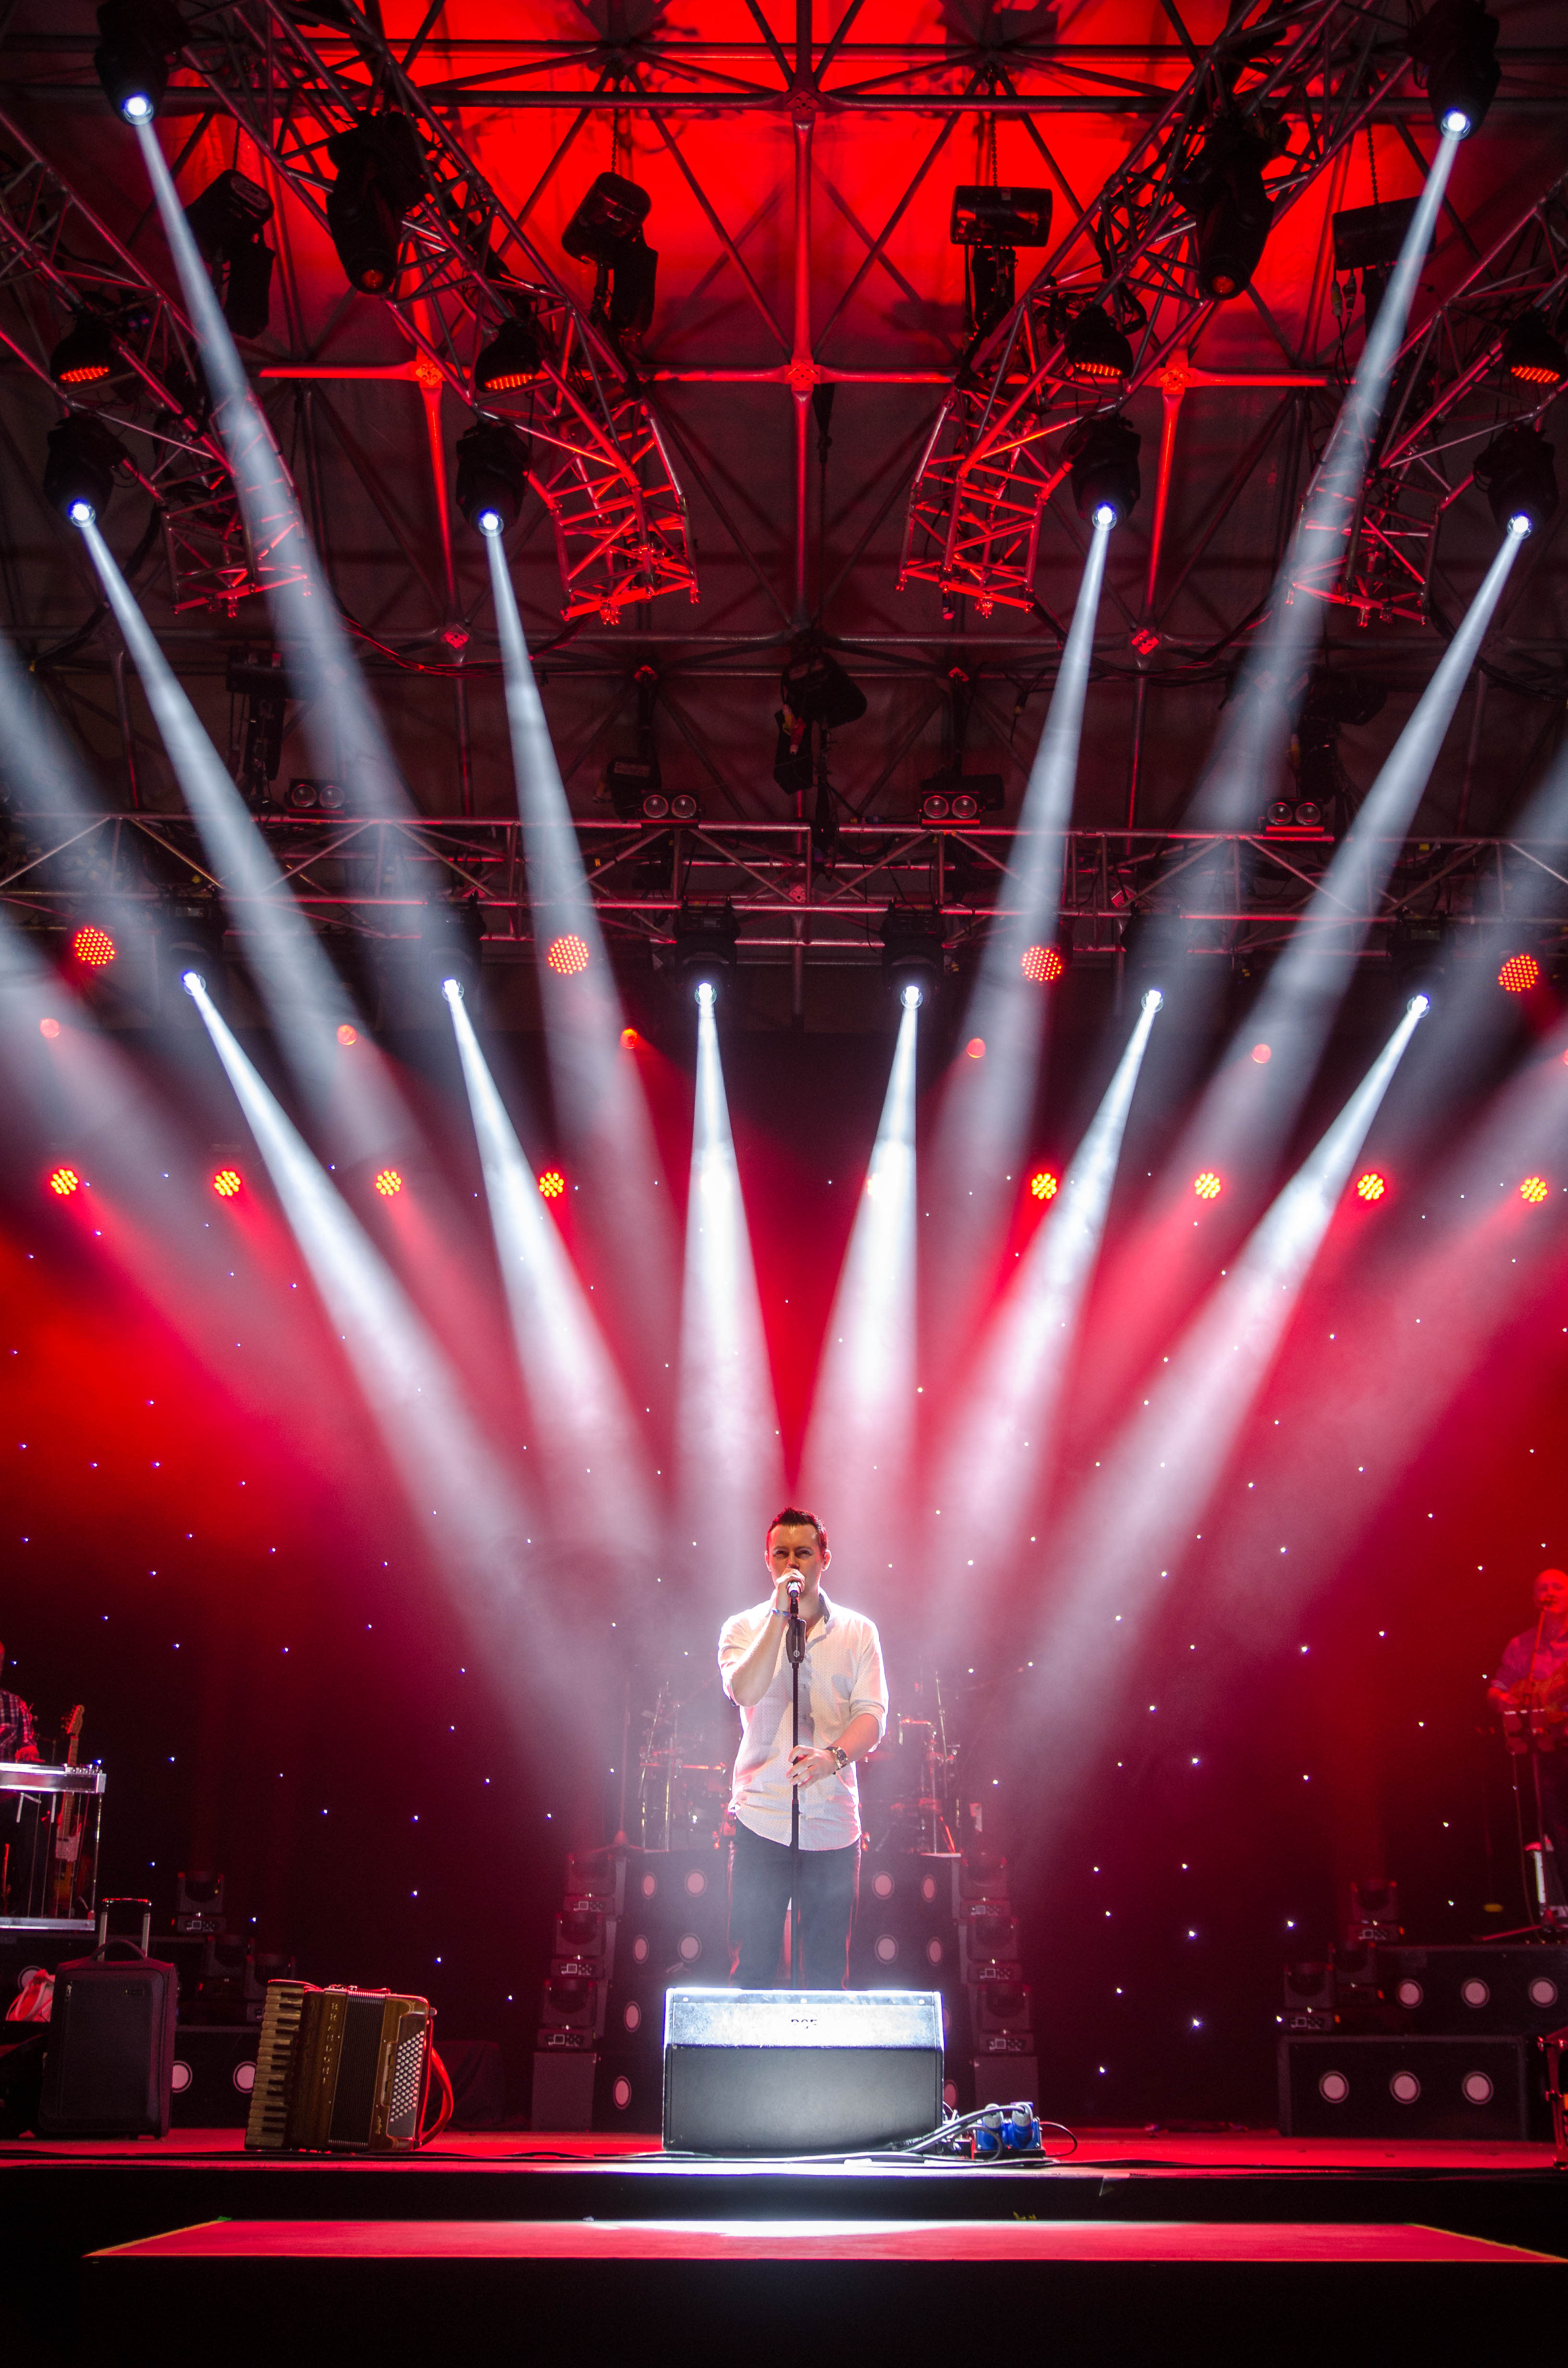 nathan-carter-at-the-marquee-cork-by-sean-smyth-15-6-14-14-of-55